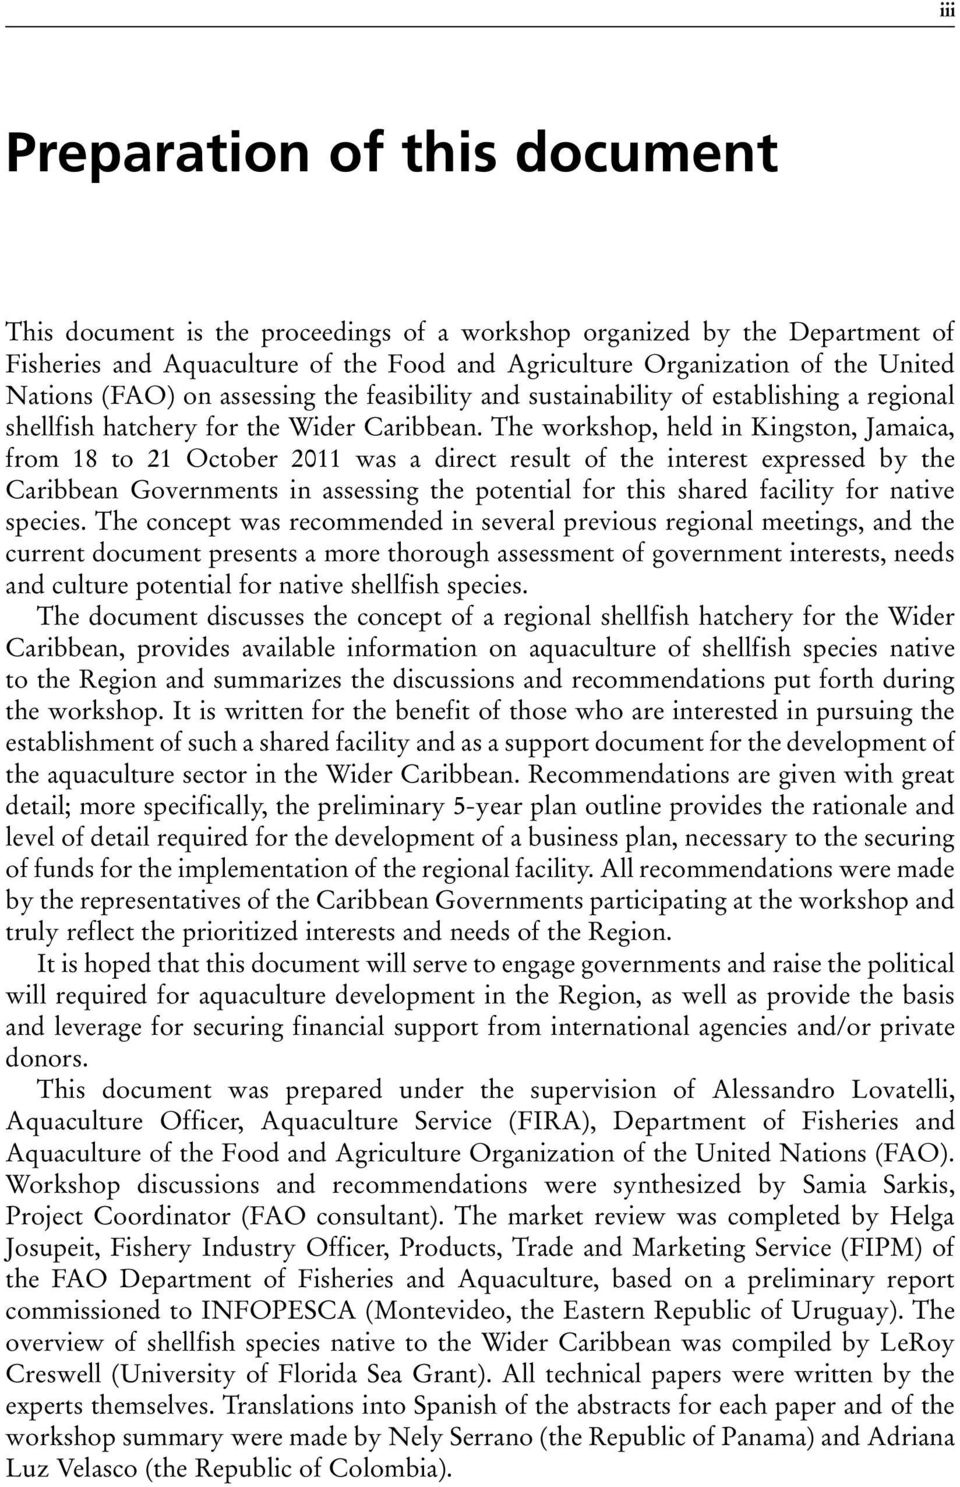 The workshop, held in Kingston, Jamaica, from 18 to 21 October 2011 was a direct result of the interest expressed by the Caribbean Governments in assessing the potential for this shared facility for